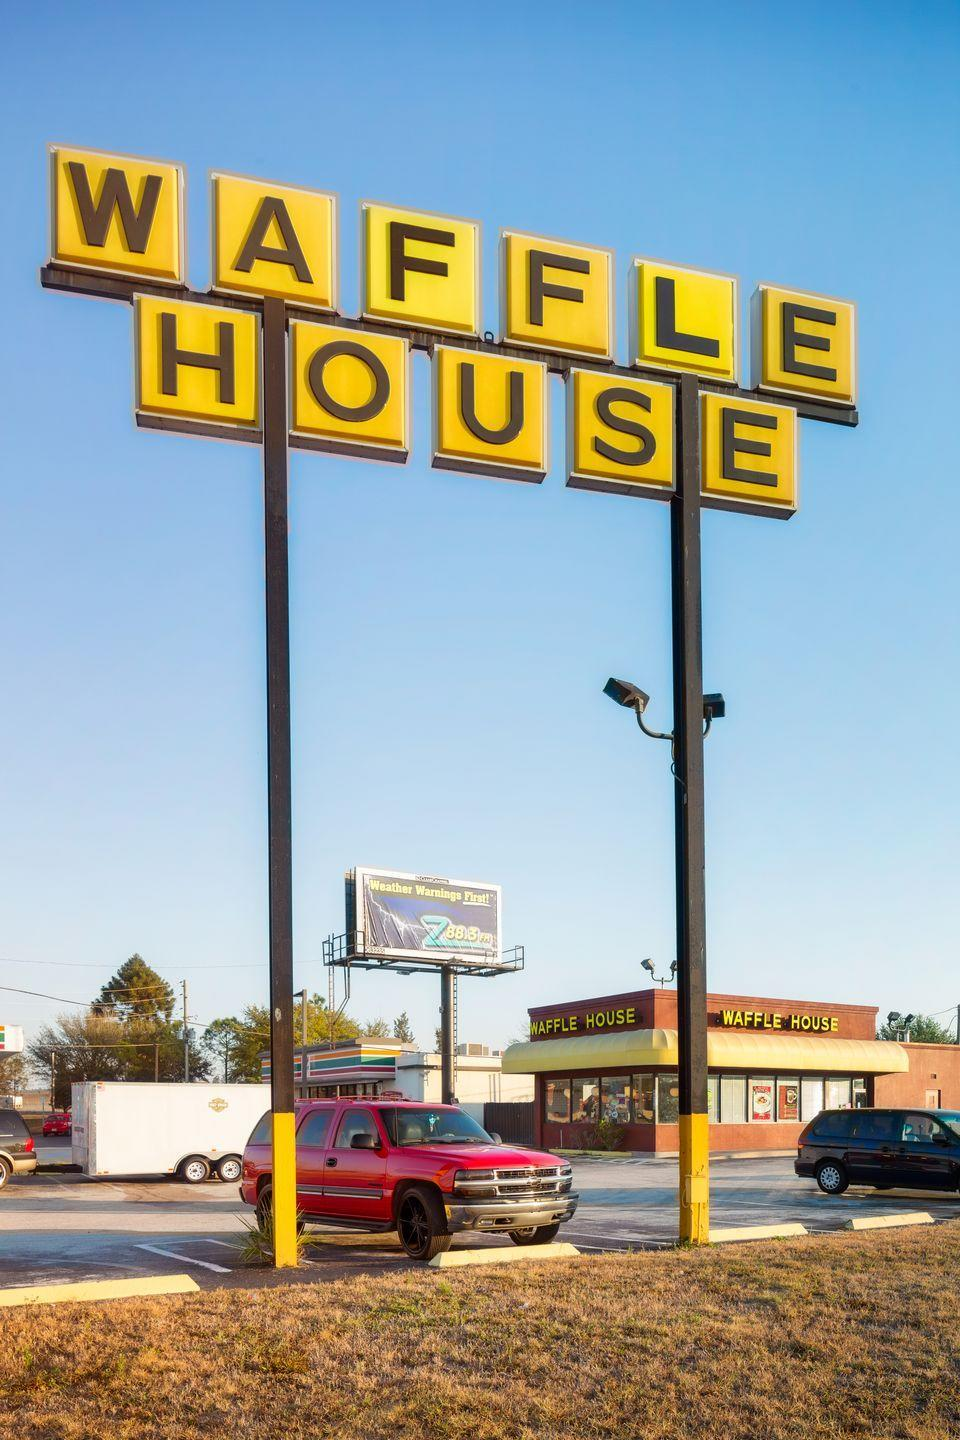 "<p>If you can't go a day without eggs, bacon, and grits, Waffle House is <a href=""https://www.wafflehouse.com/faq/"" rel=""nofollow noopener"" target=""_blank"" data-ylk=""slk:open"" class=""link rapid-noclick-resp"">open</a> 24 hours a day, 365 days a year — yep, even Christmas Day.</p>"